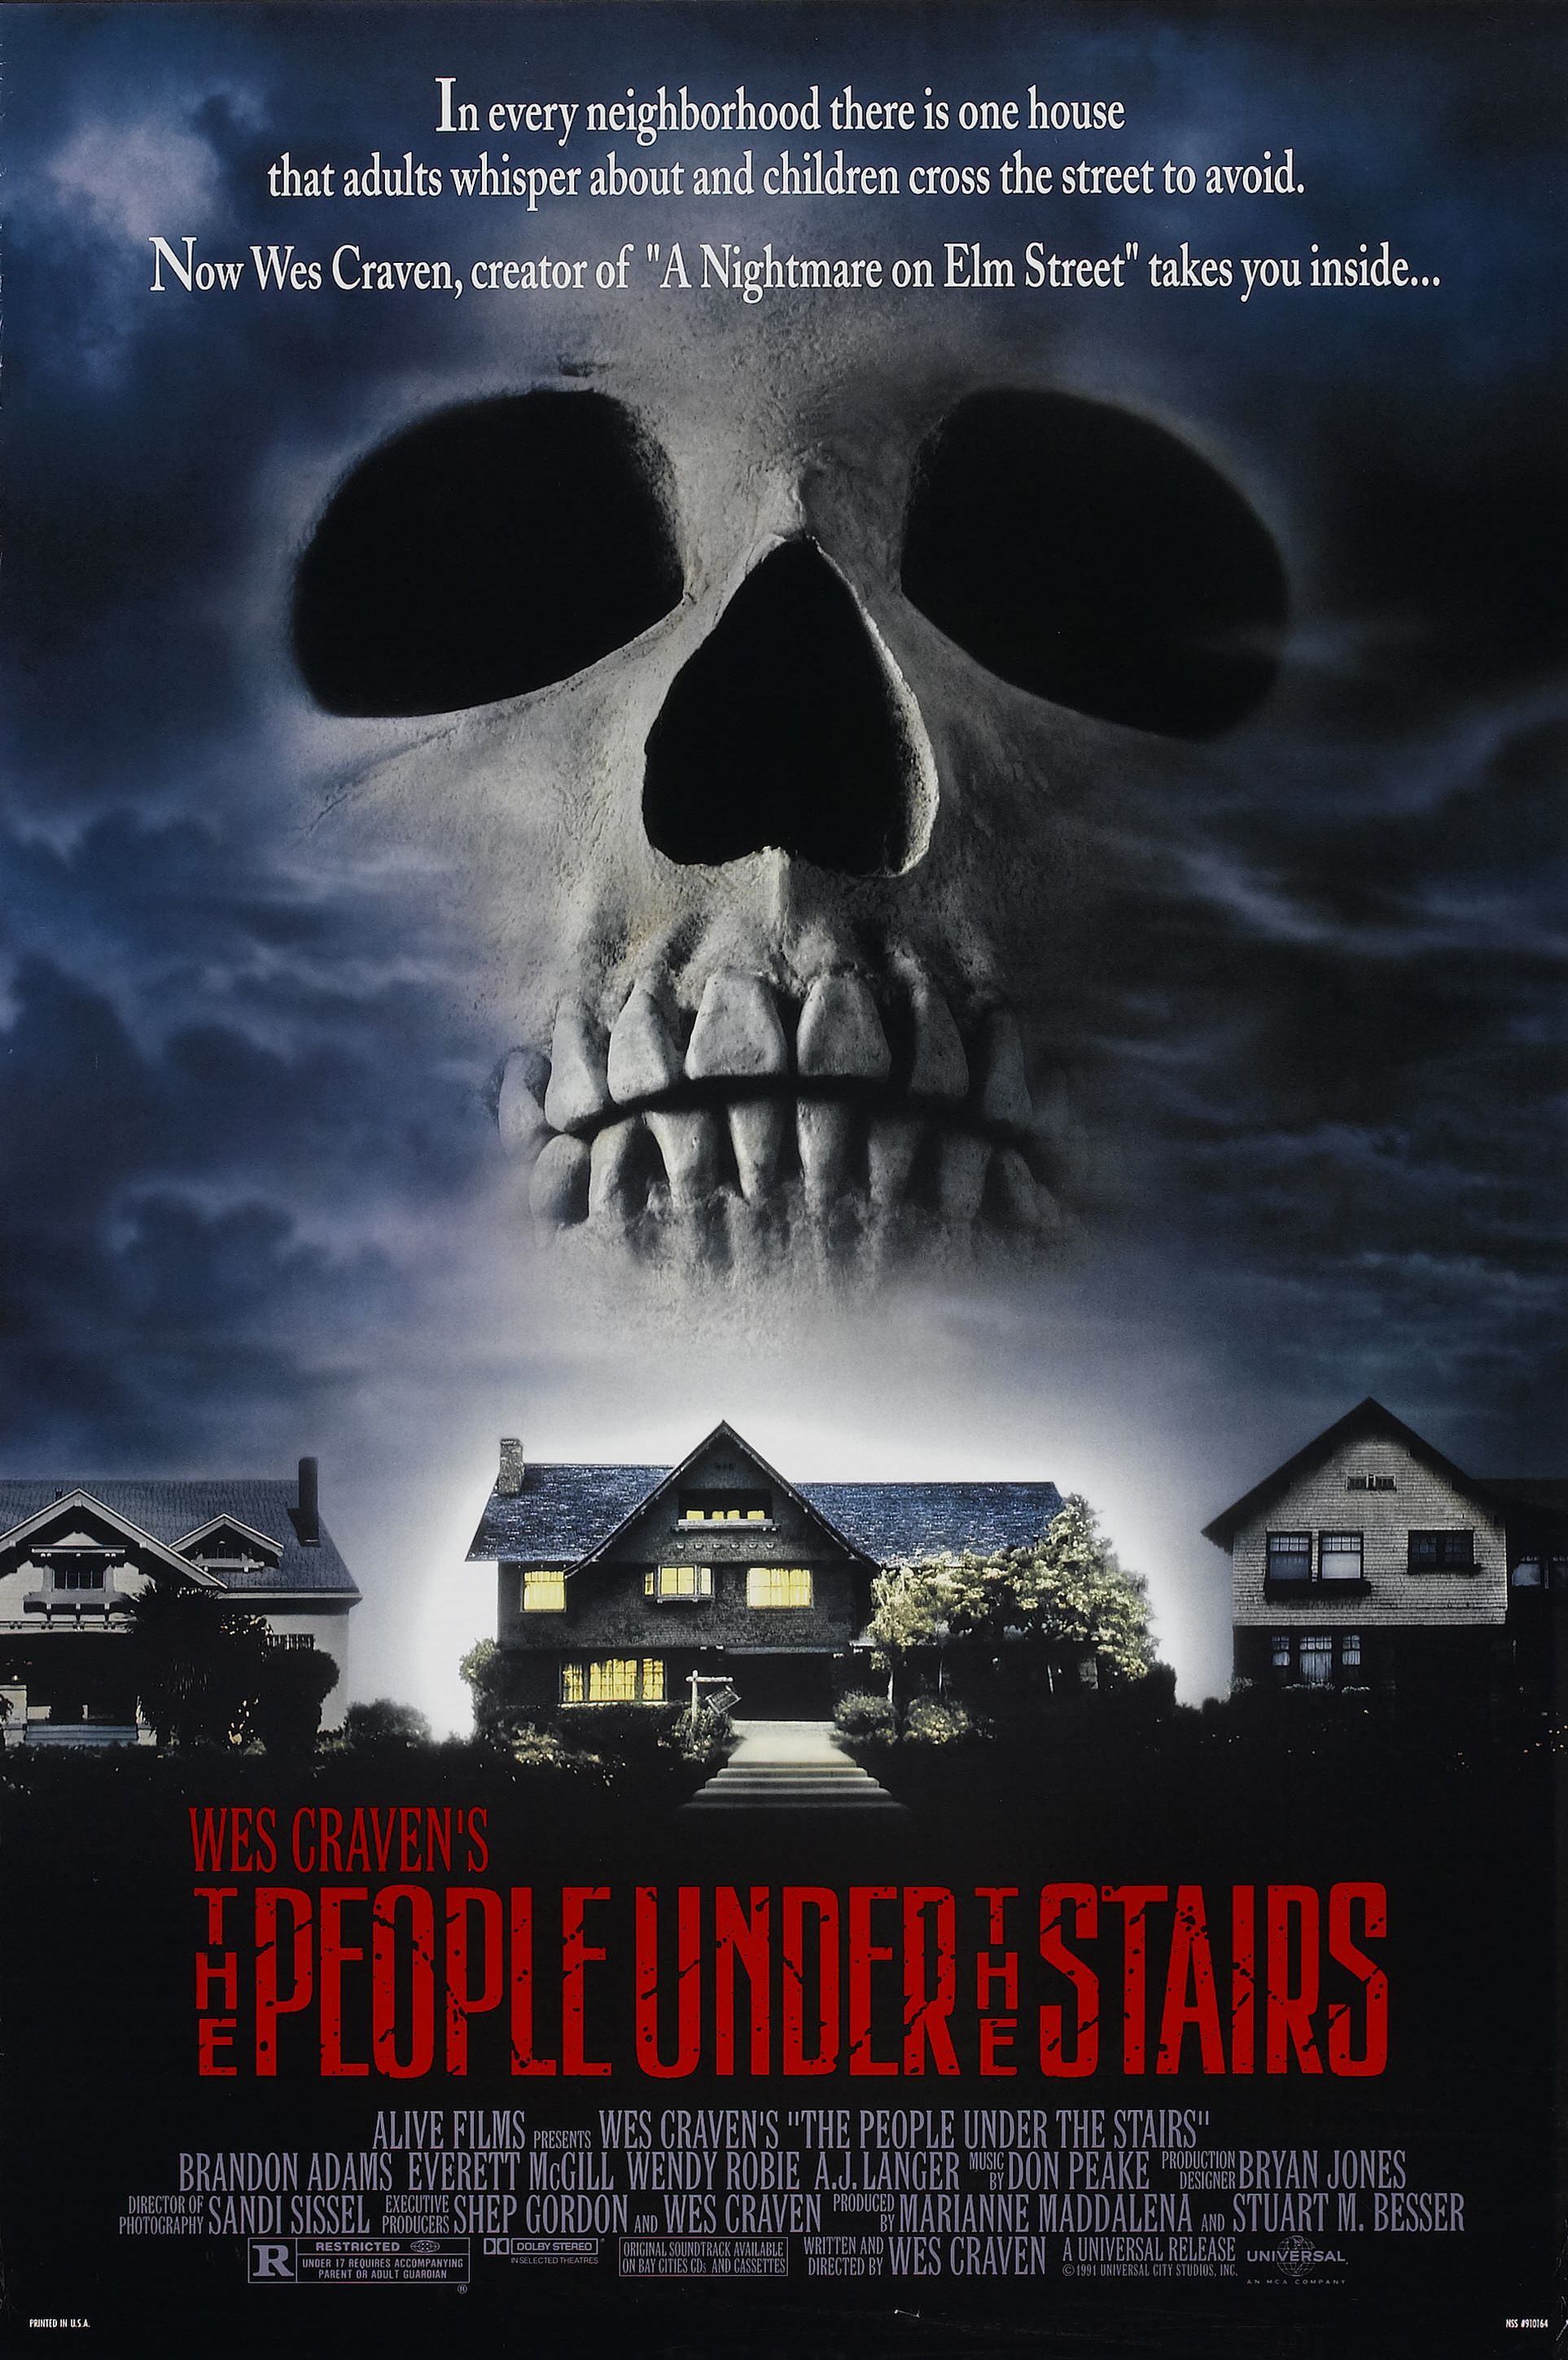 http://thewolfmancometh.files.wordpress.com/2011/10/the-people-under-the-stairs-movie-poster-wes-craven-1991.jpg